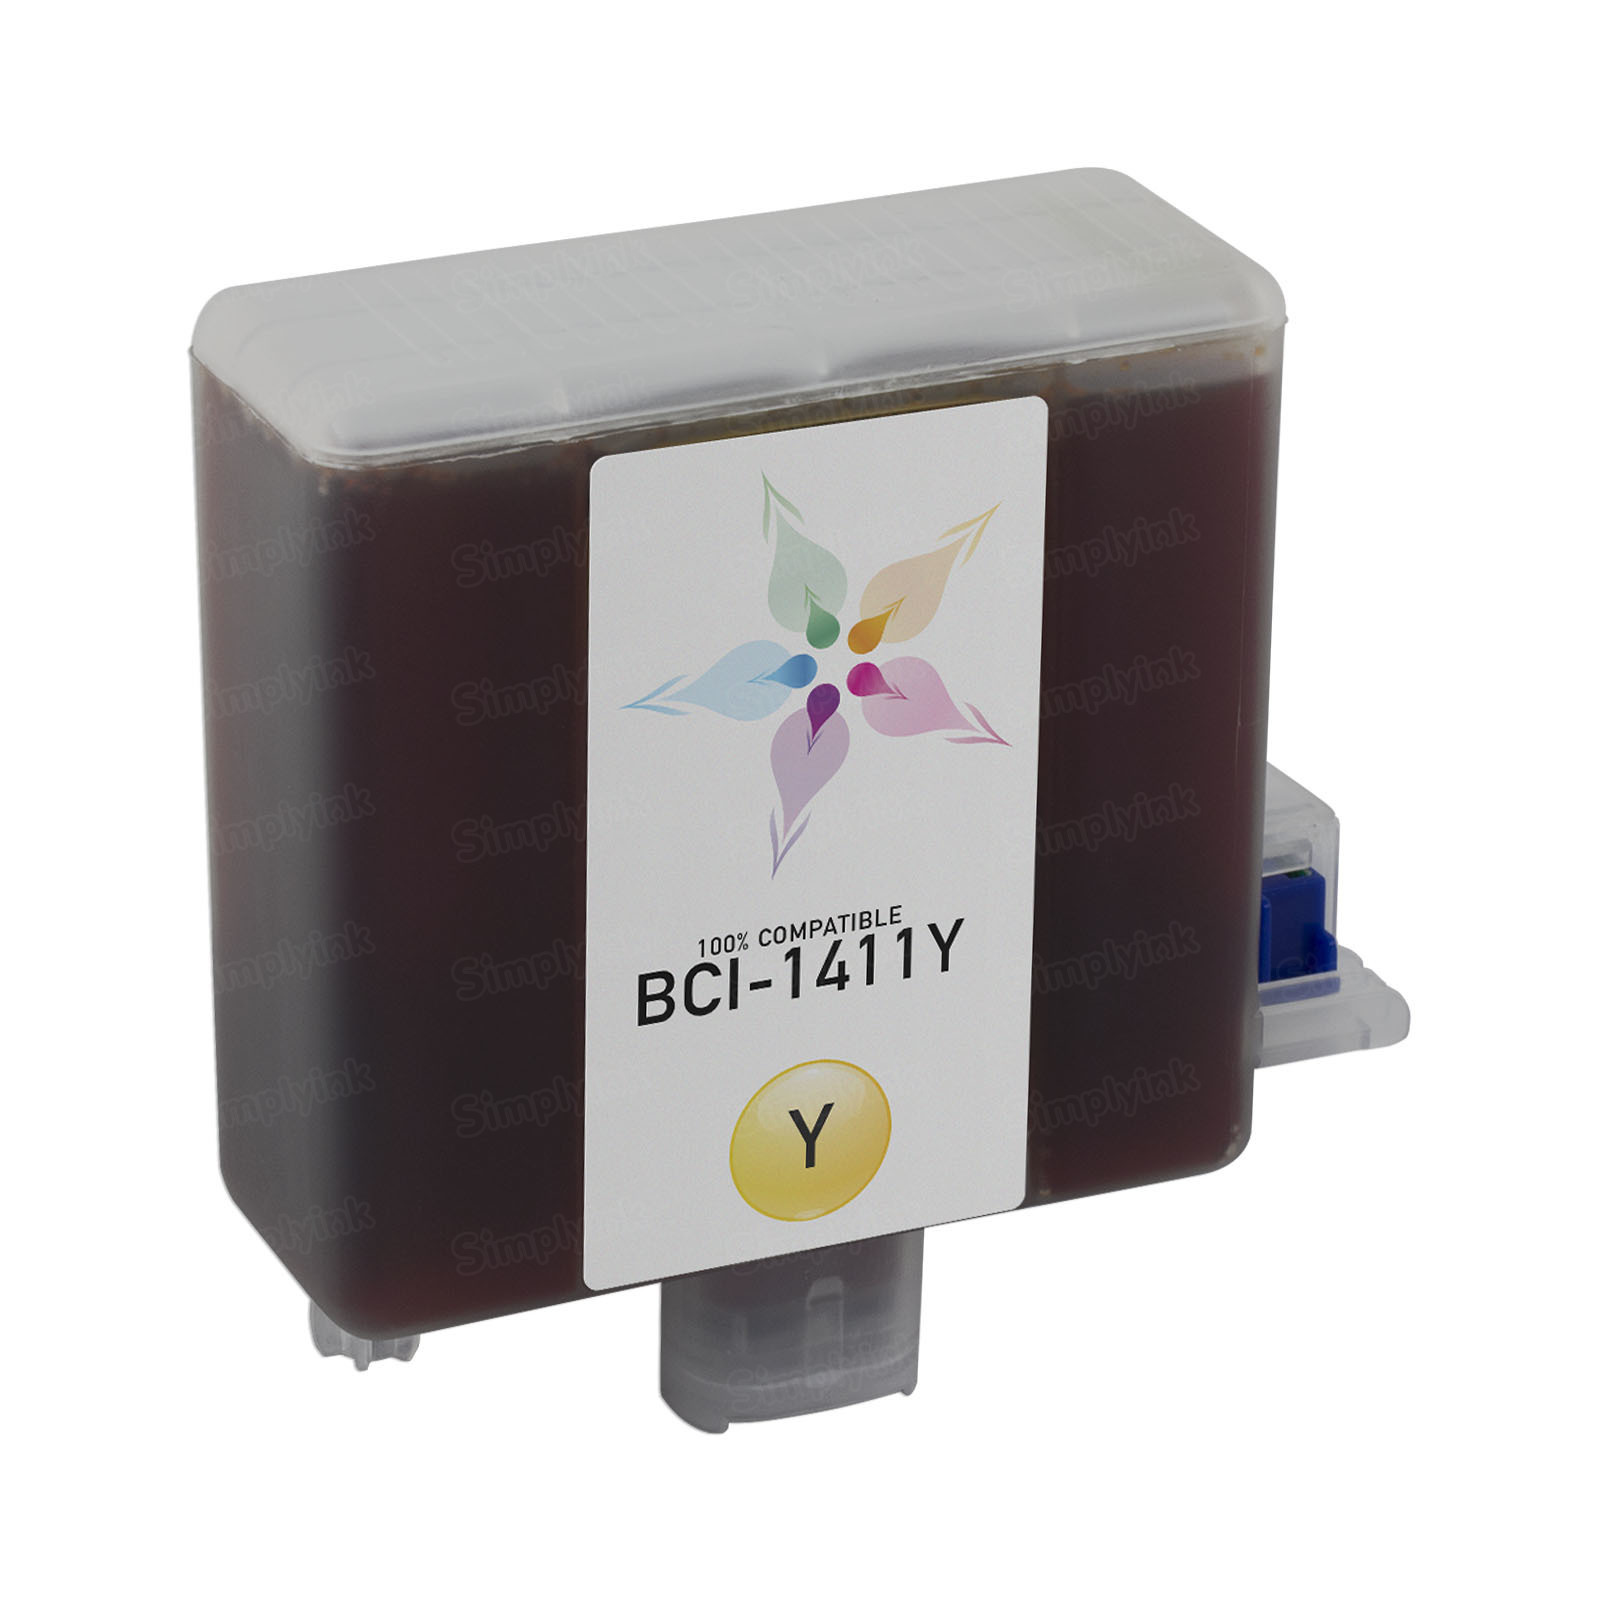 Canon Compatible BCI-1411Y Yellow Ink for imagePROGRAF W7200 & W8200